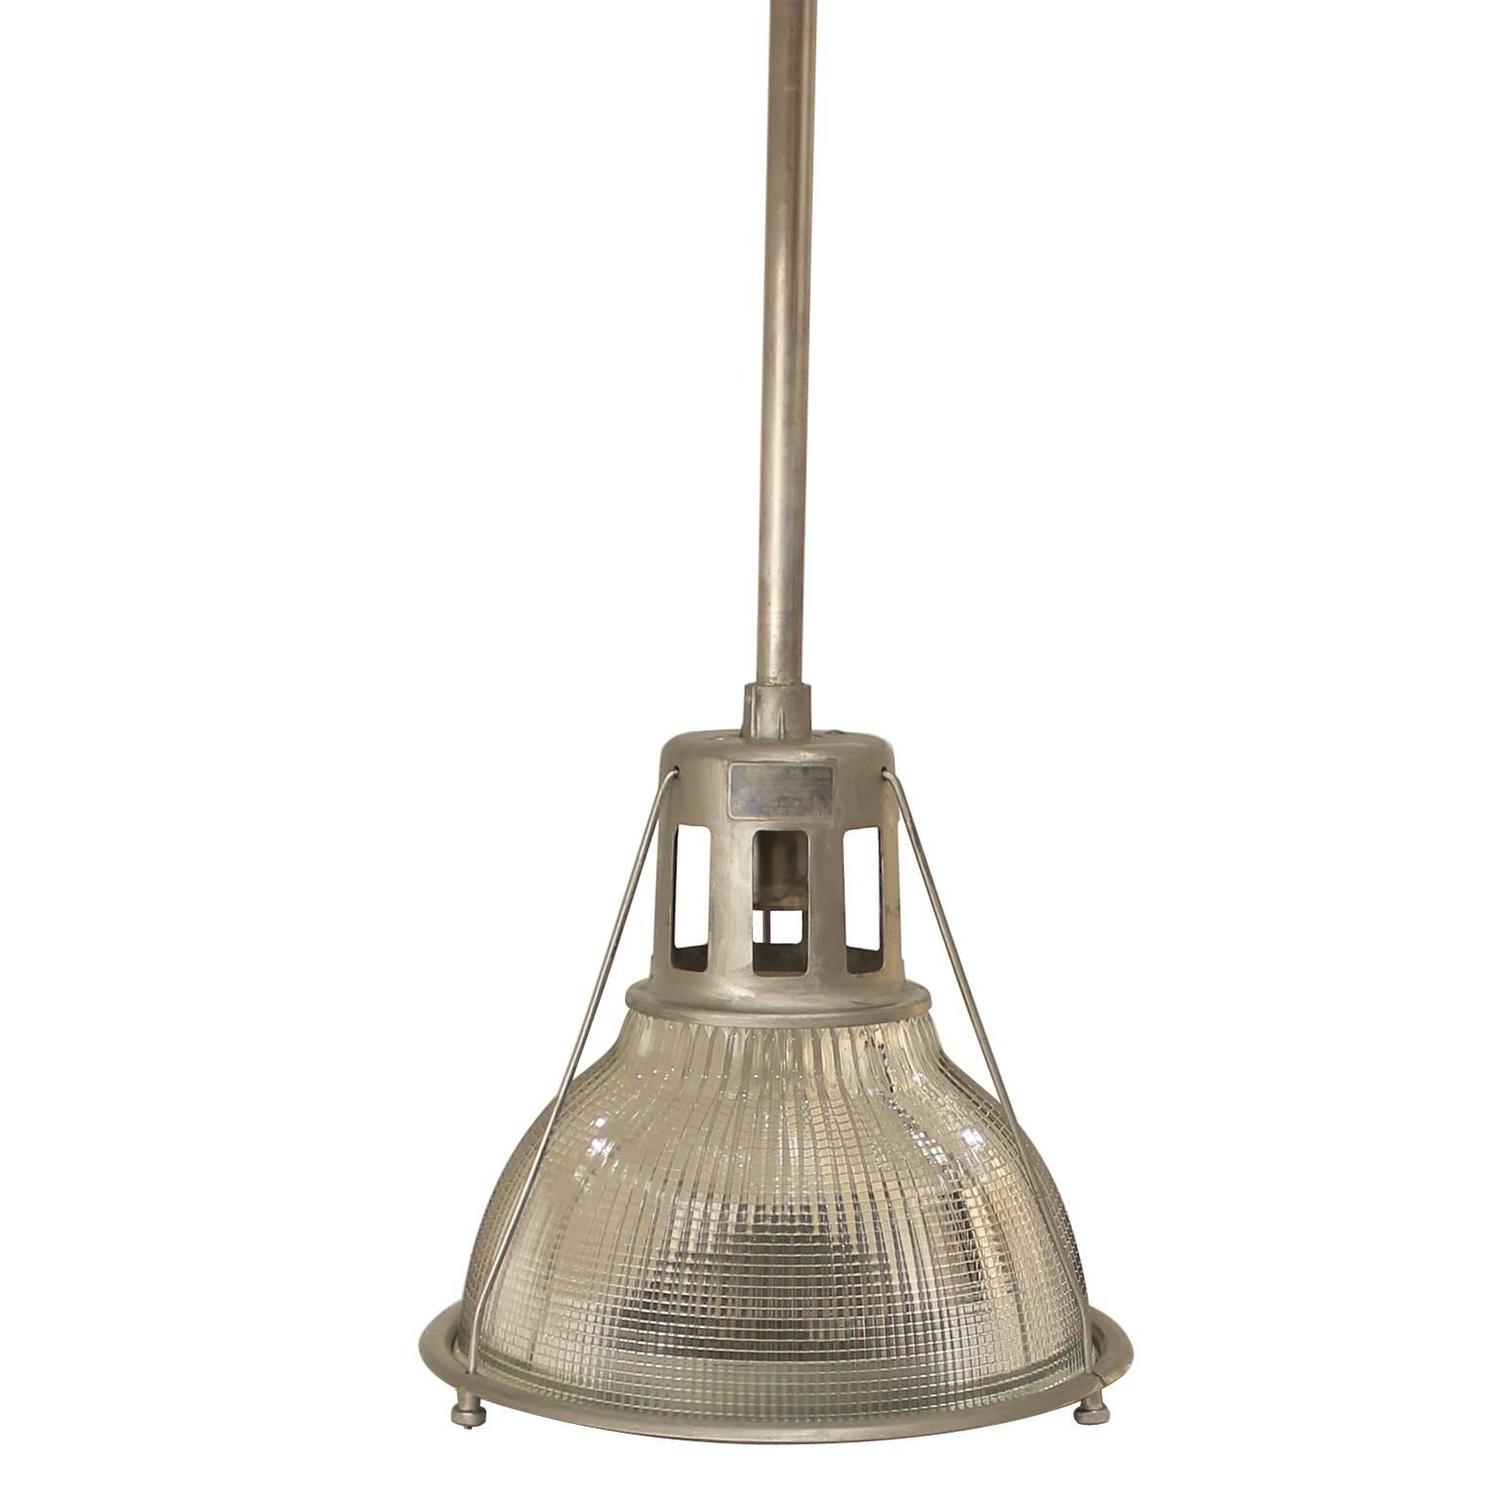 Outstanding Industrial 1940s Holophane Light For Sale At